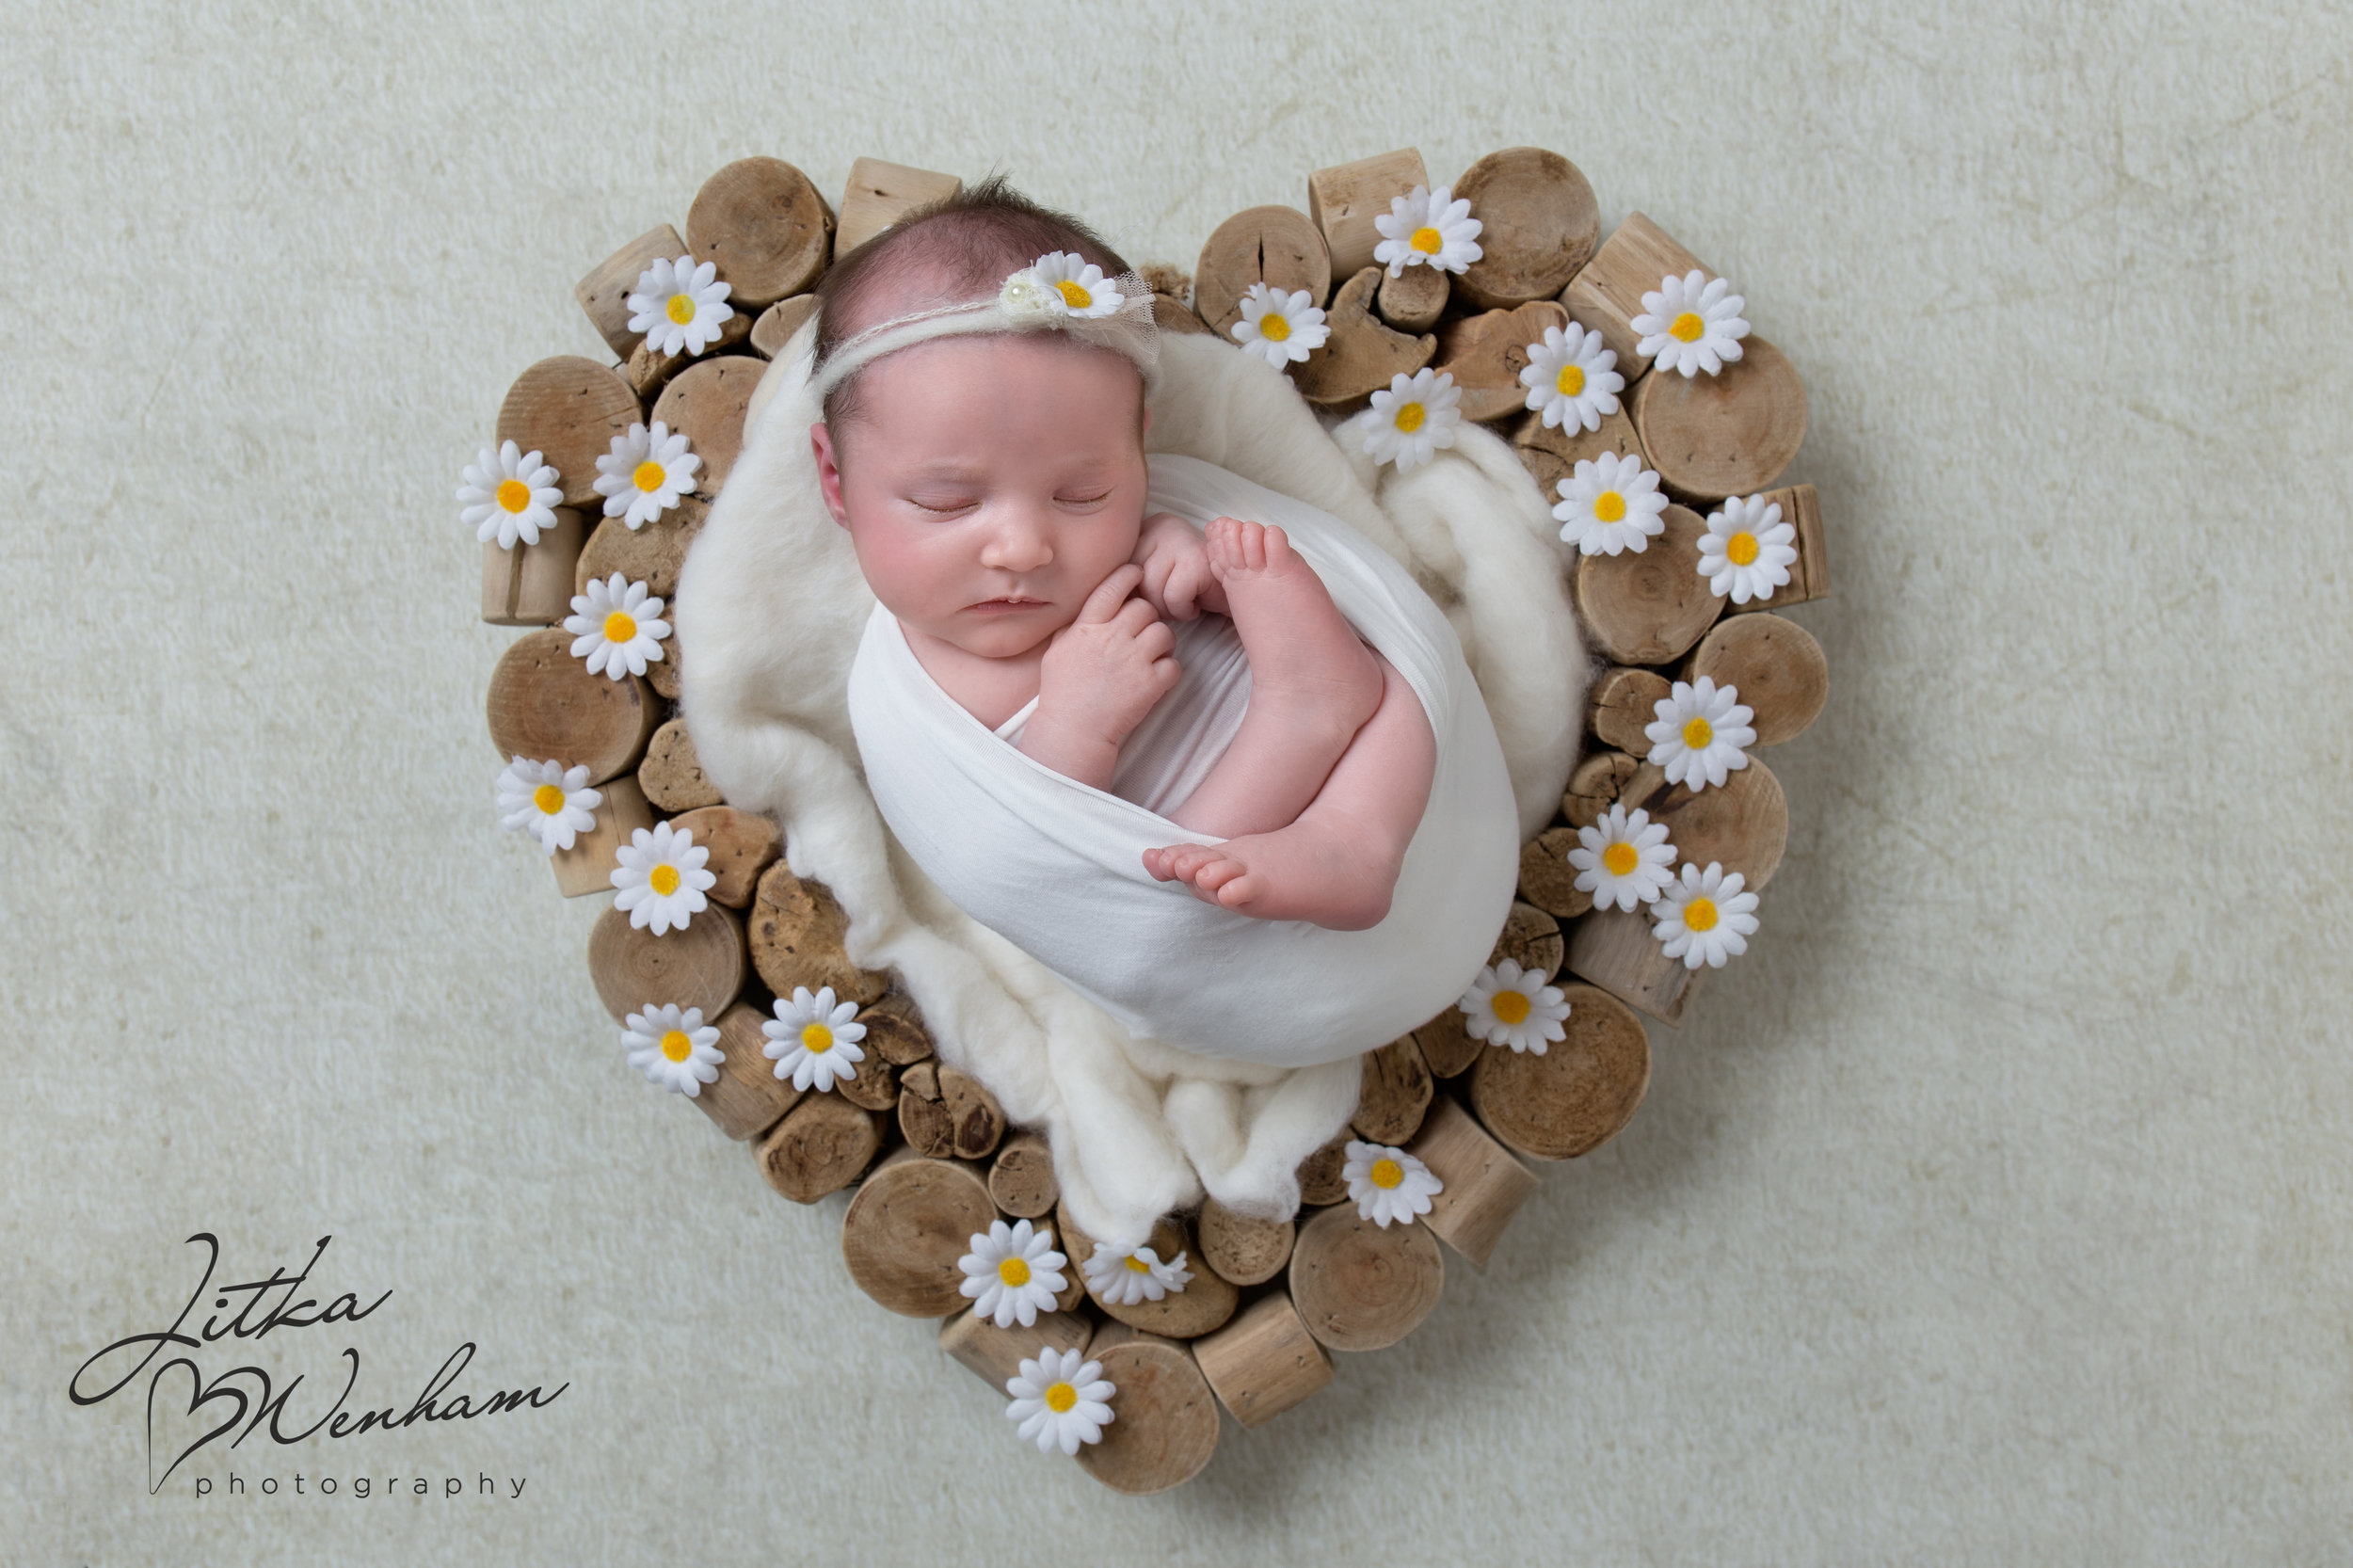 newborn-photography-children-baby-milton keynes-cake-smash-1.jpg